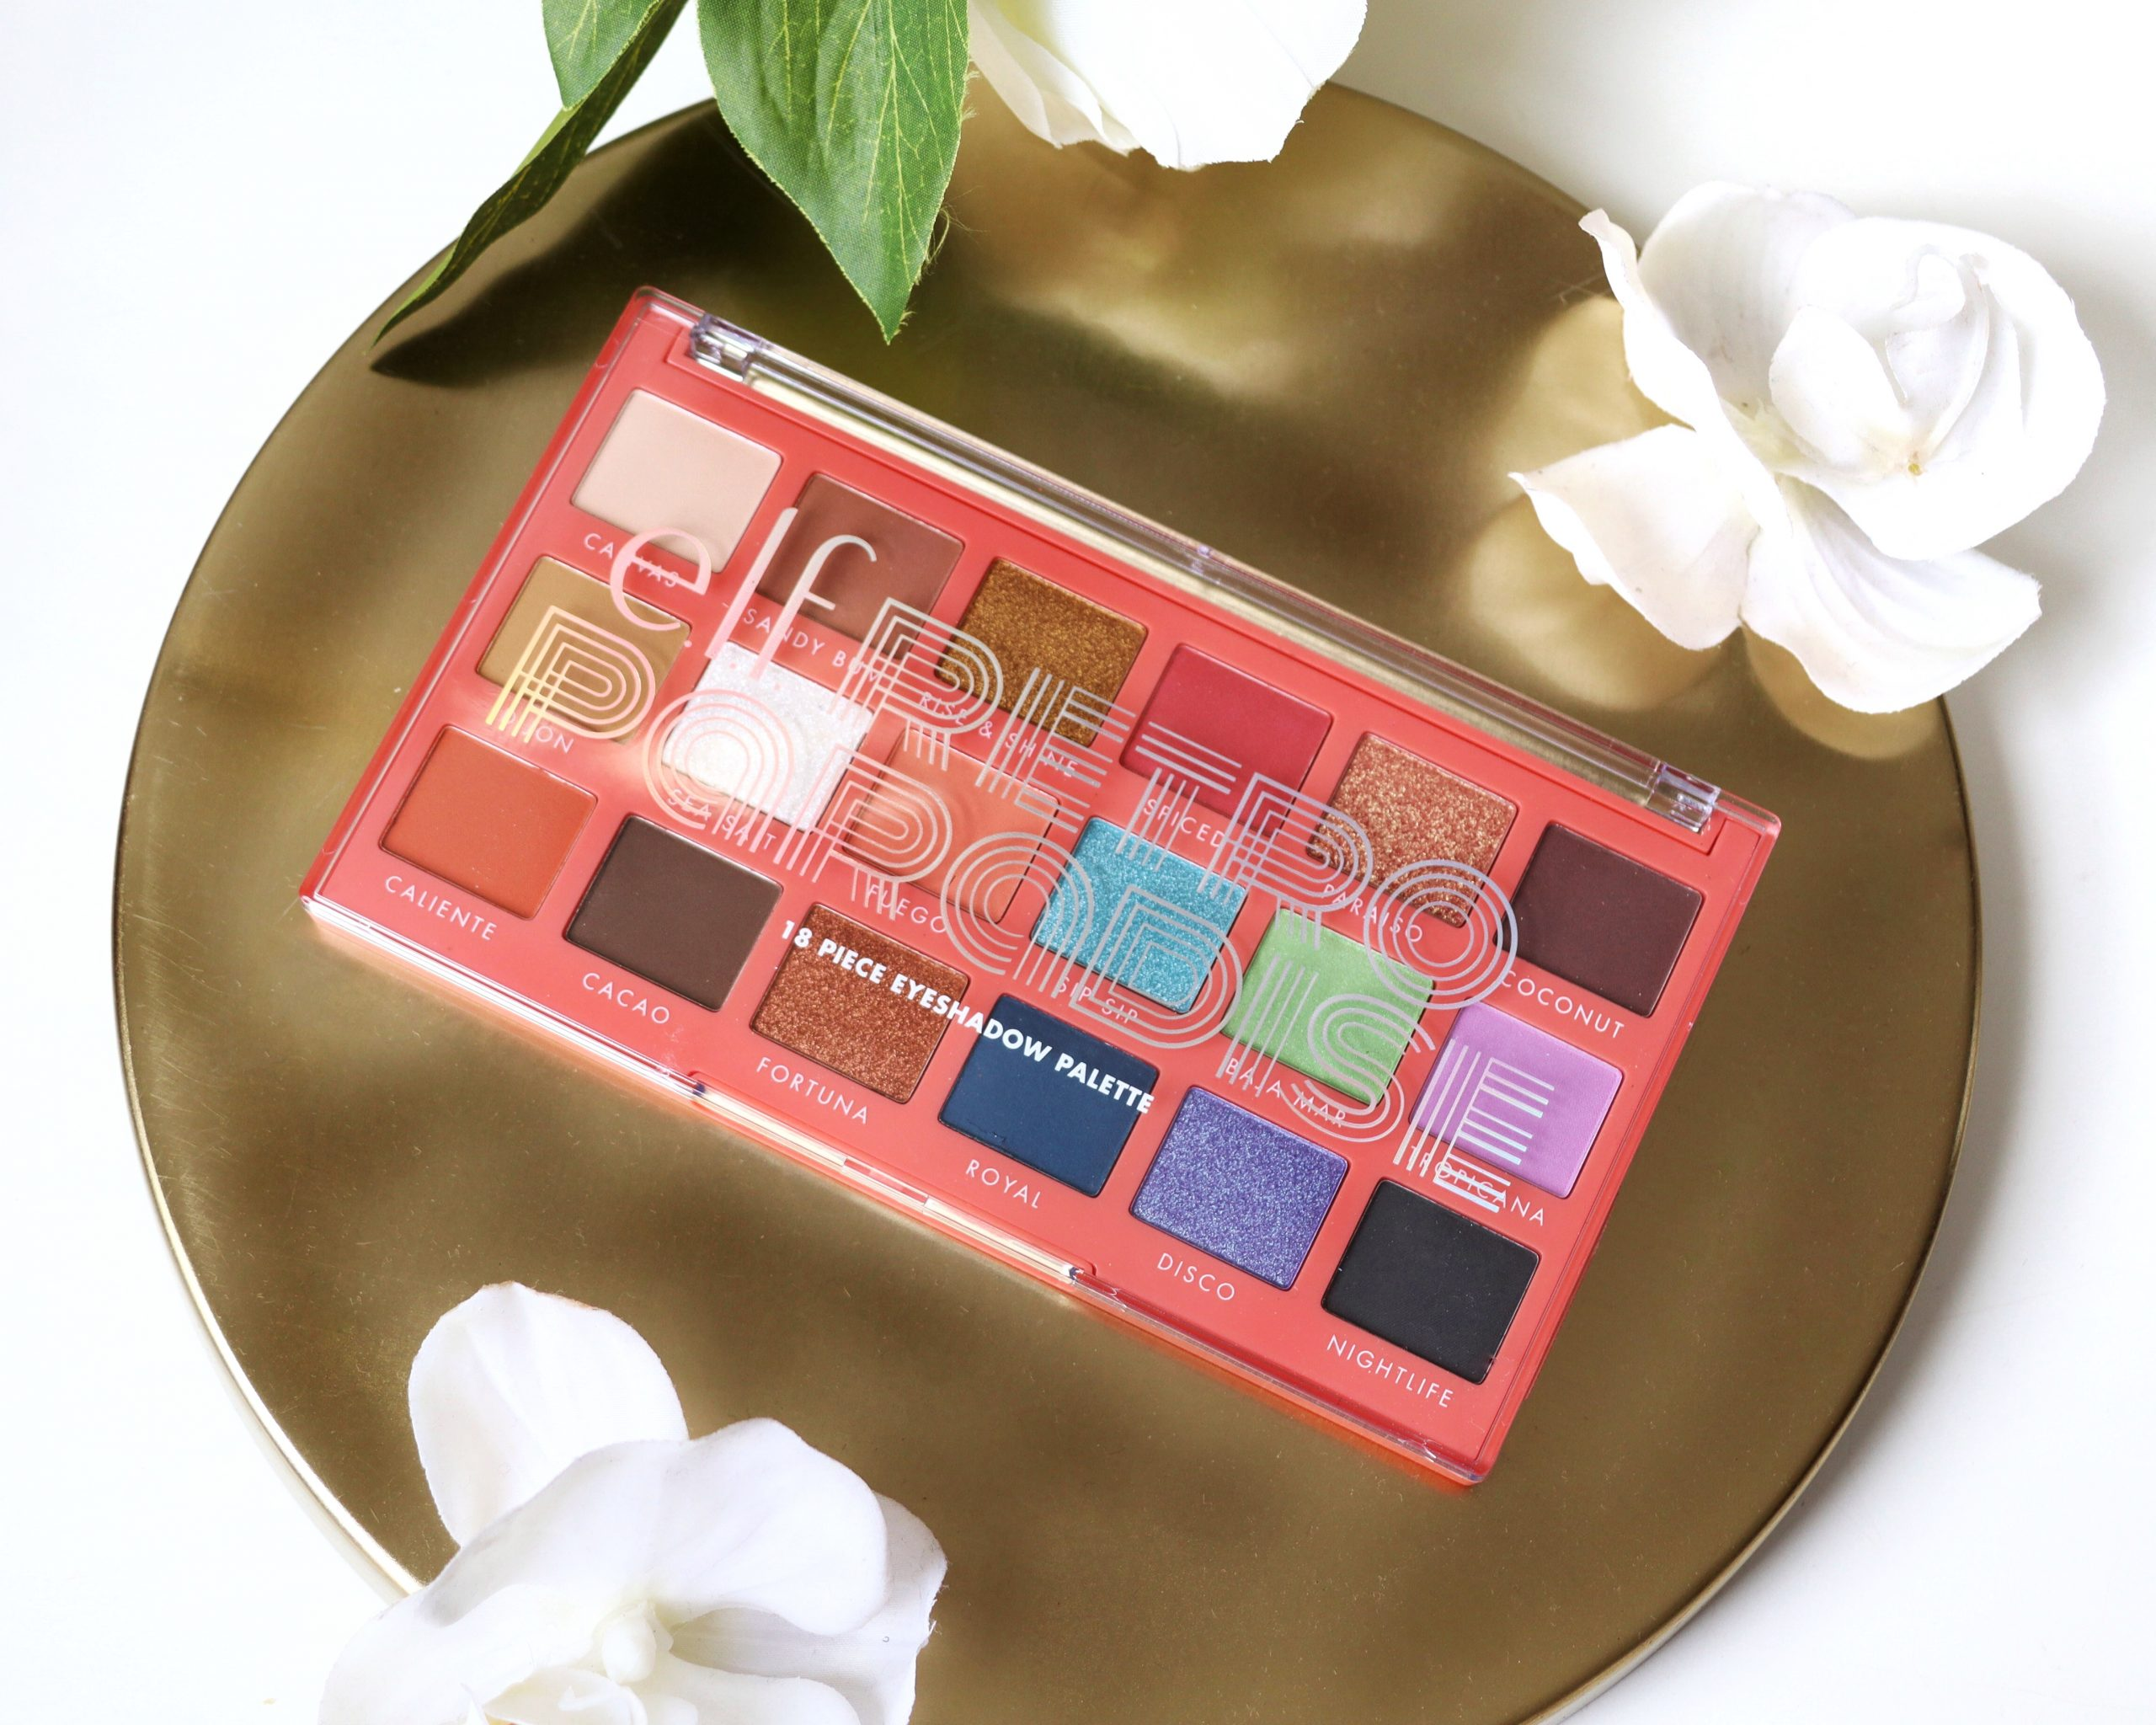 ELF Retro Paradise Eyeshadow Palette sits on a gold tray surrounded by white flowers